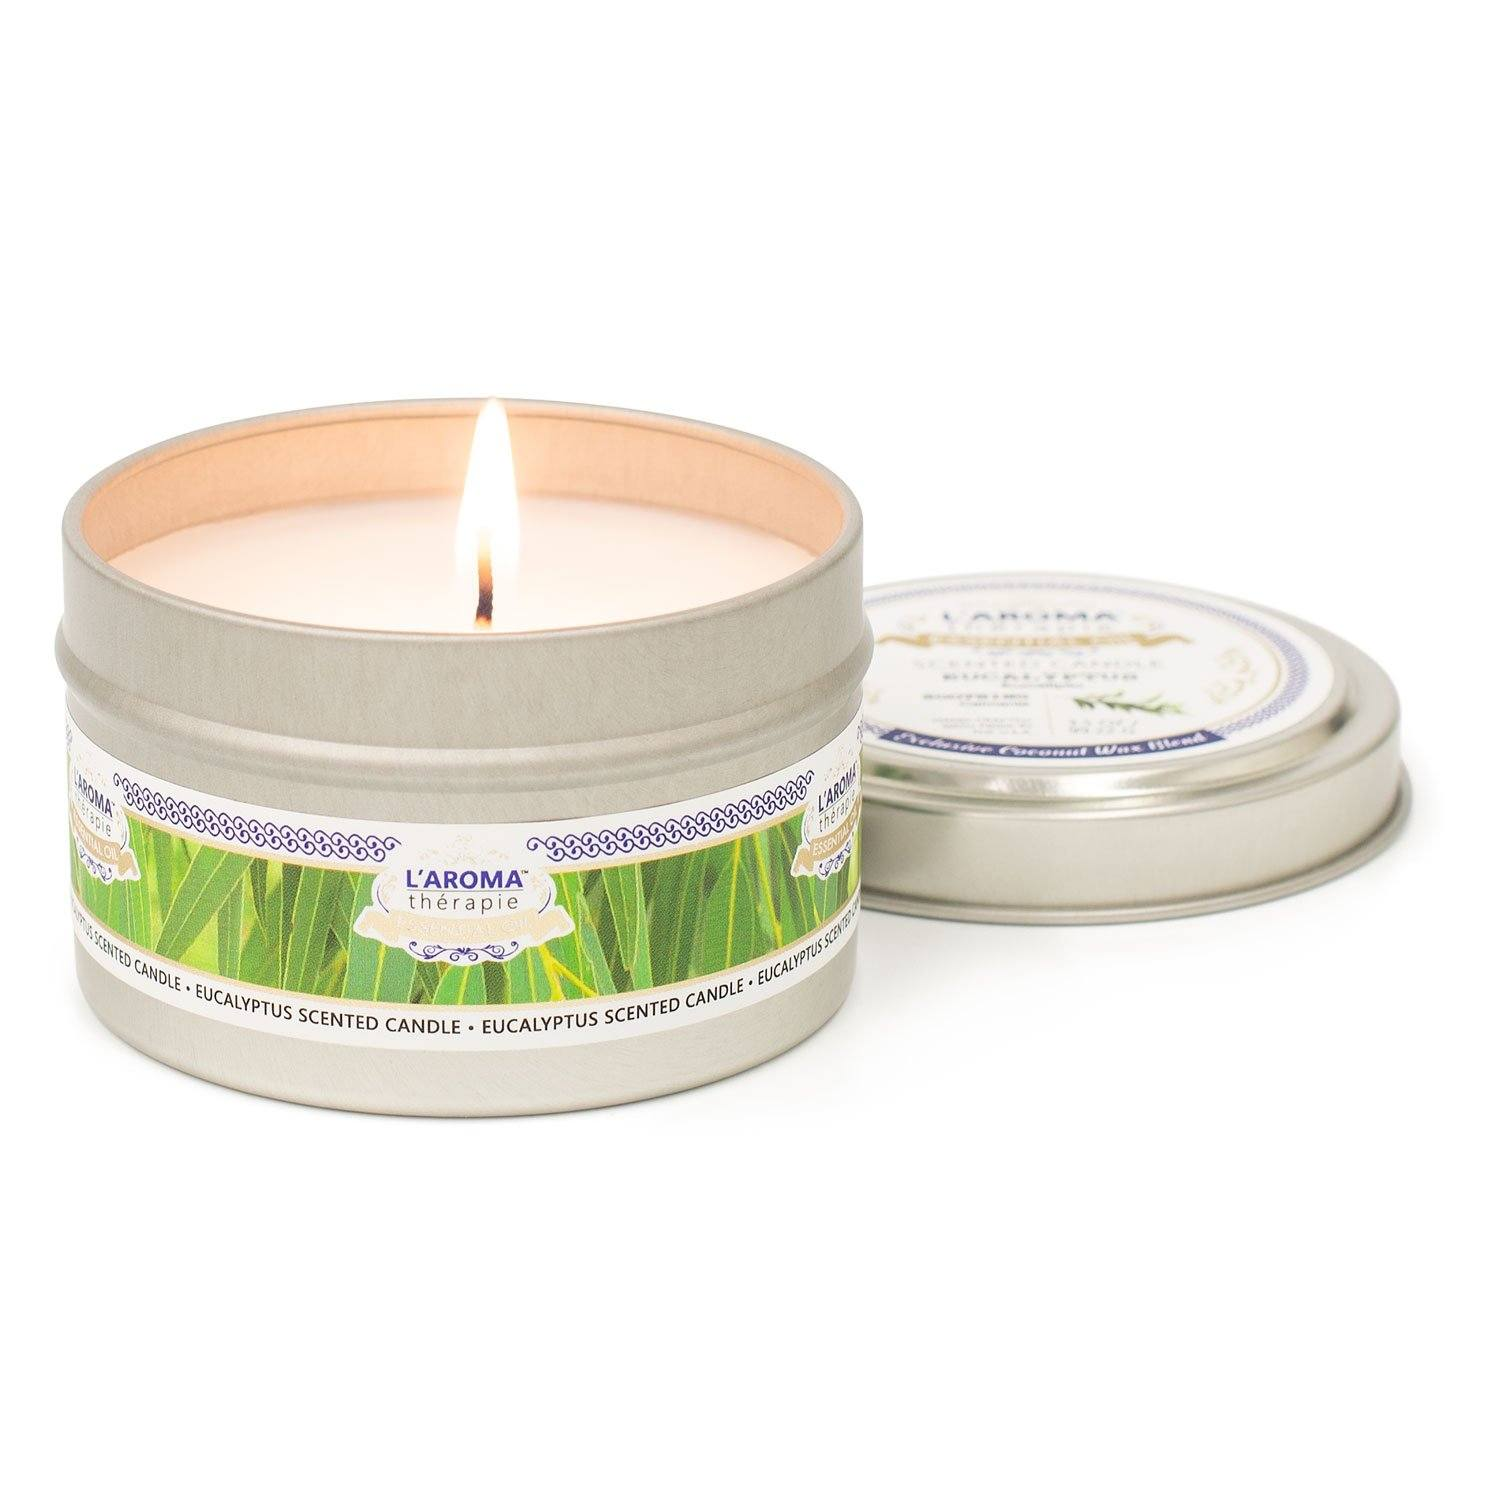 Eucalyptus Essential Oil Tin Candle Candles Candlemart.com $ 7.99